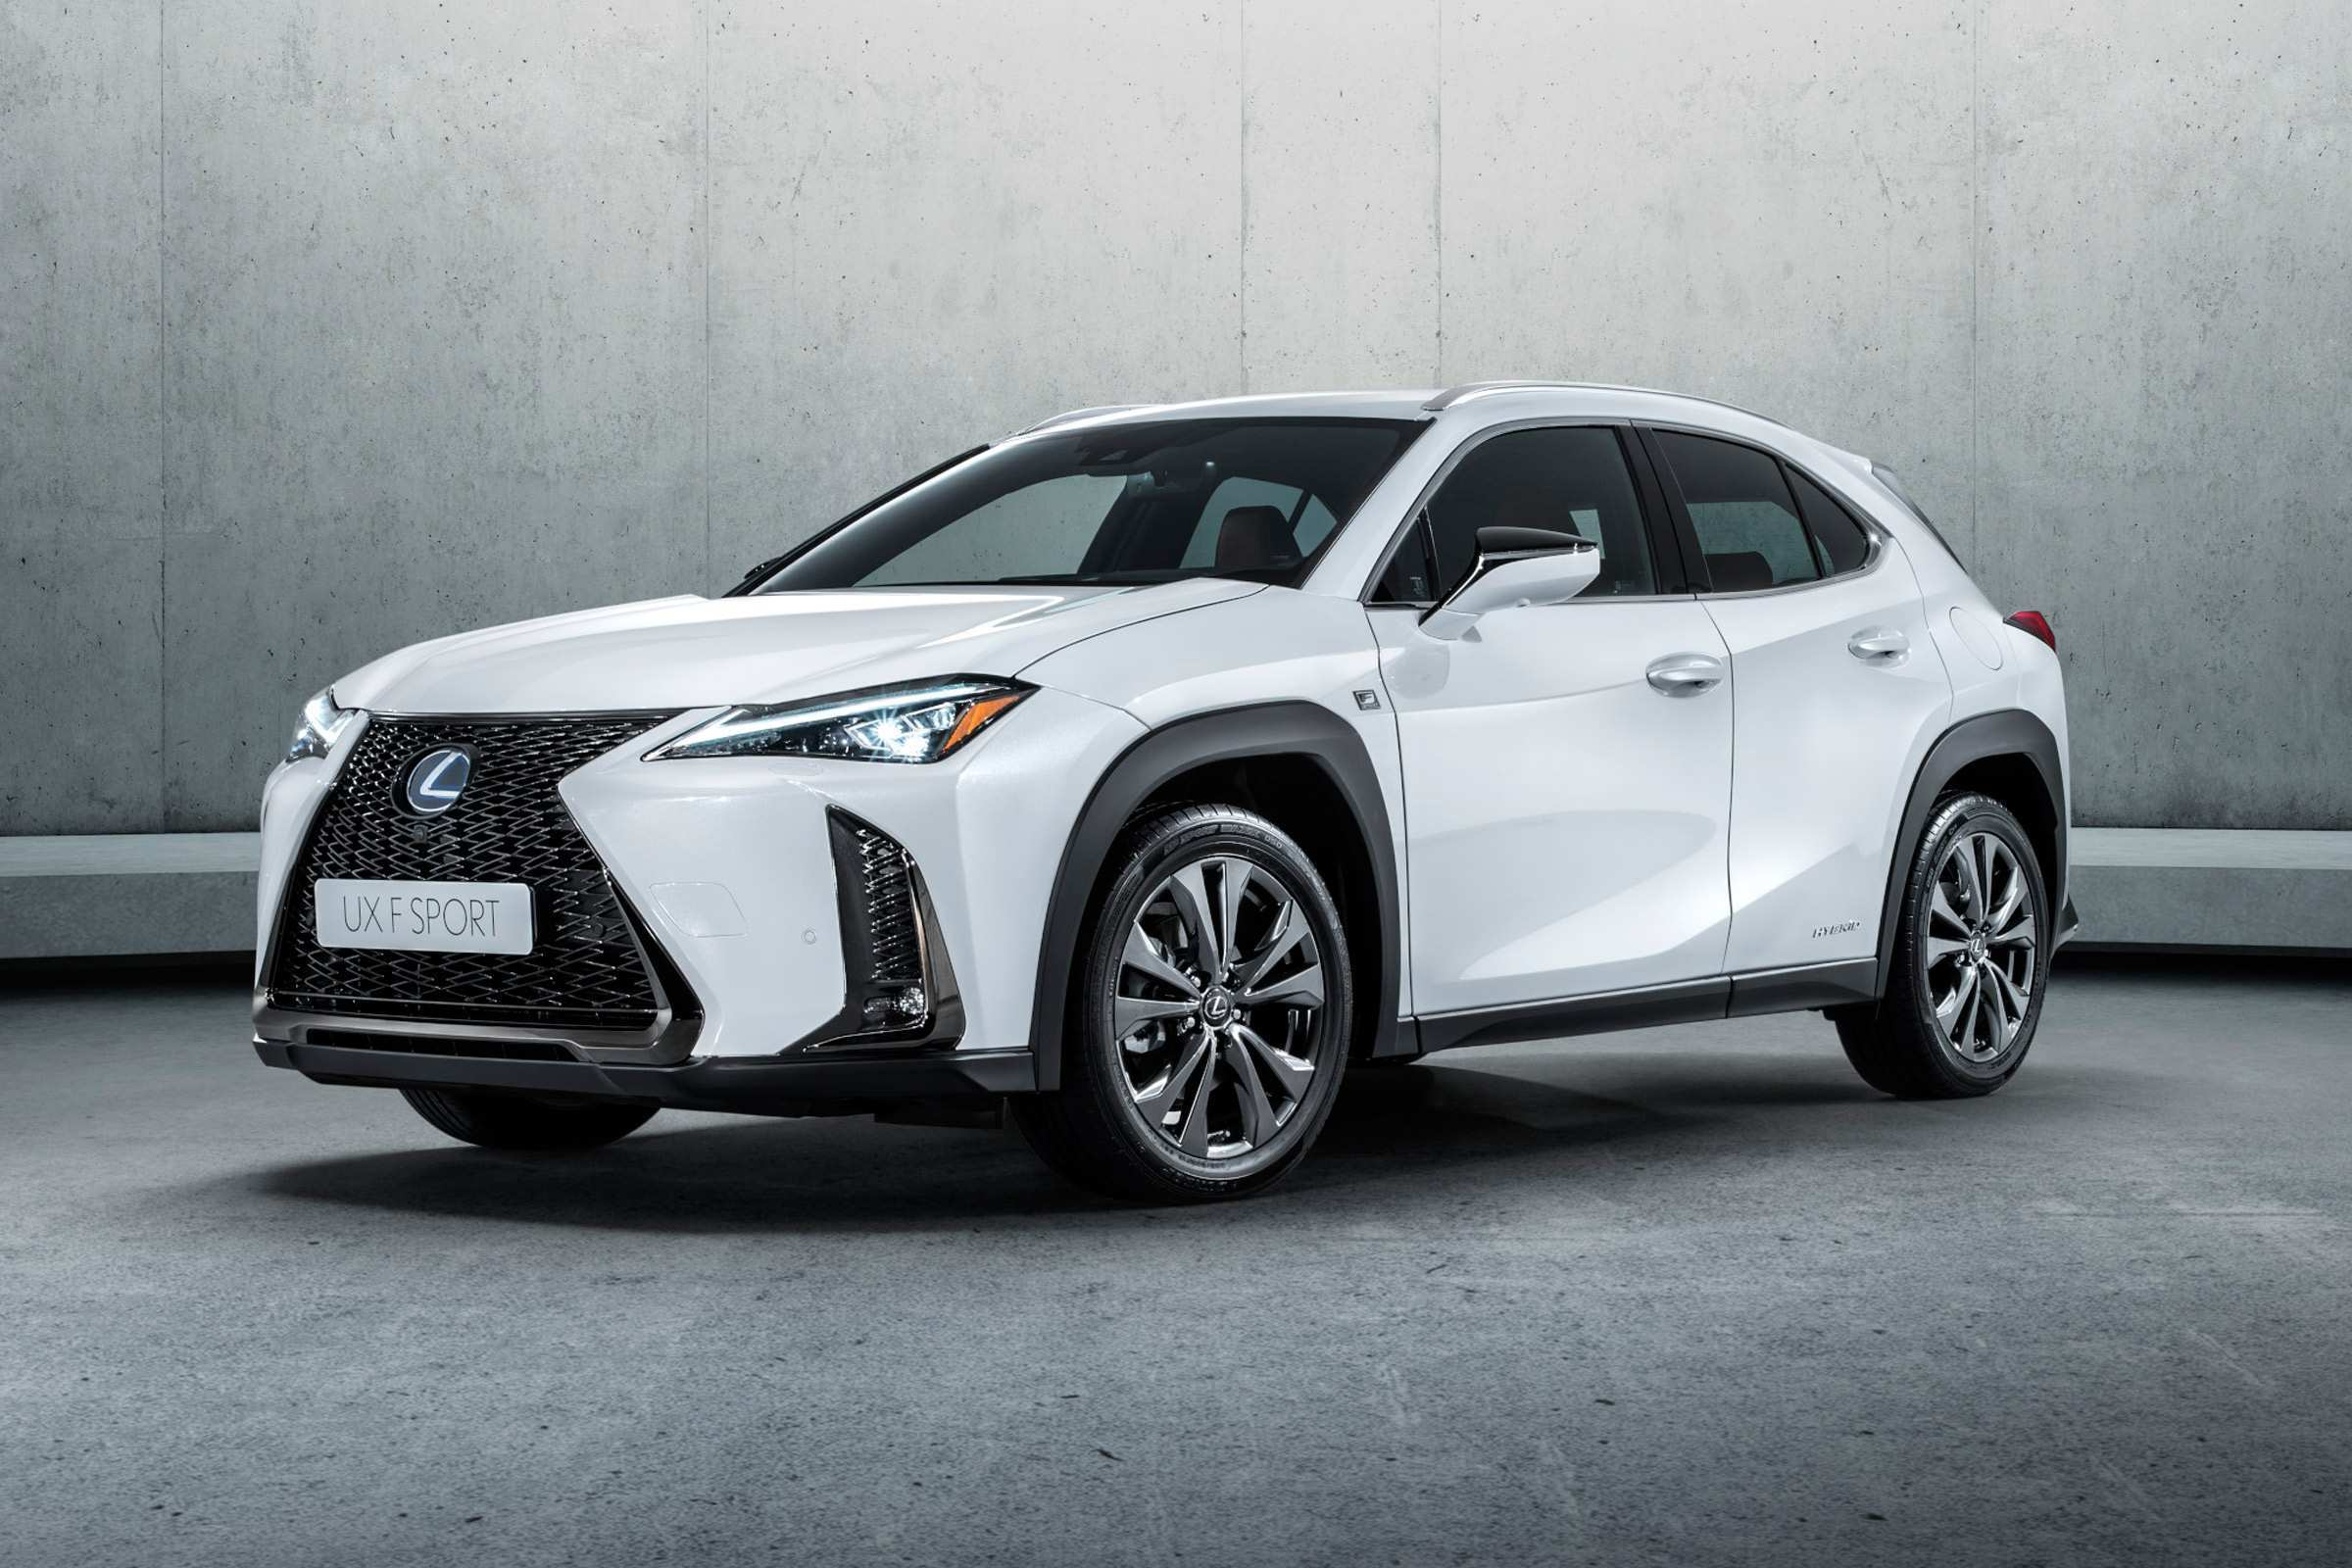 97 The Lexus Ux 2019 Price 2 Model for Lexus Ux 2019 Price 2